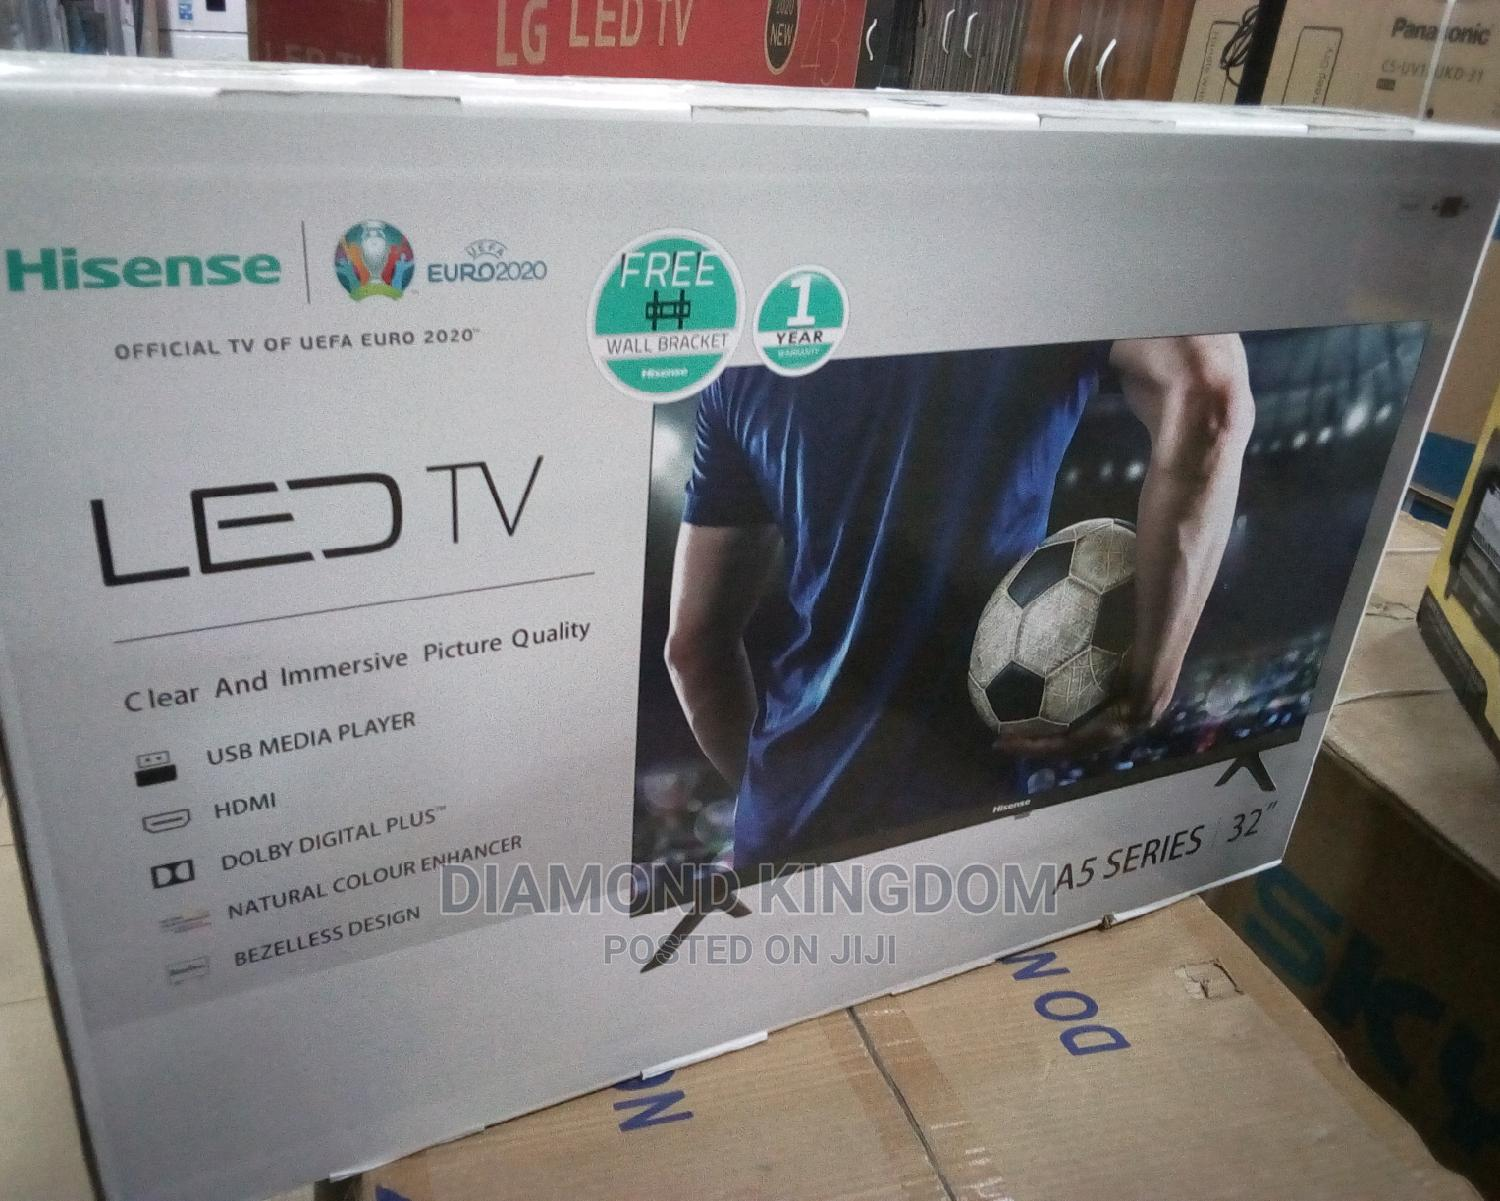 Hisense Led Television 32 Inches | TV & DVD Equipment for sale in Mushin, Lagos State, Nigeria